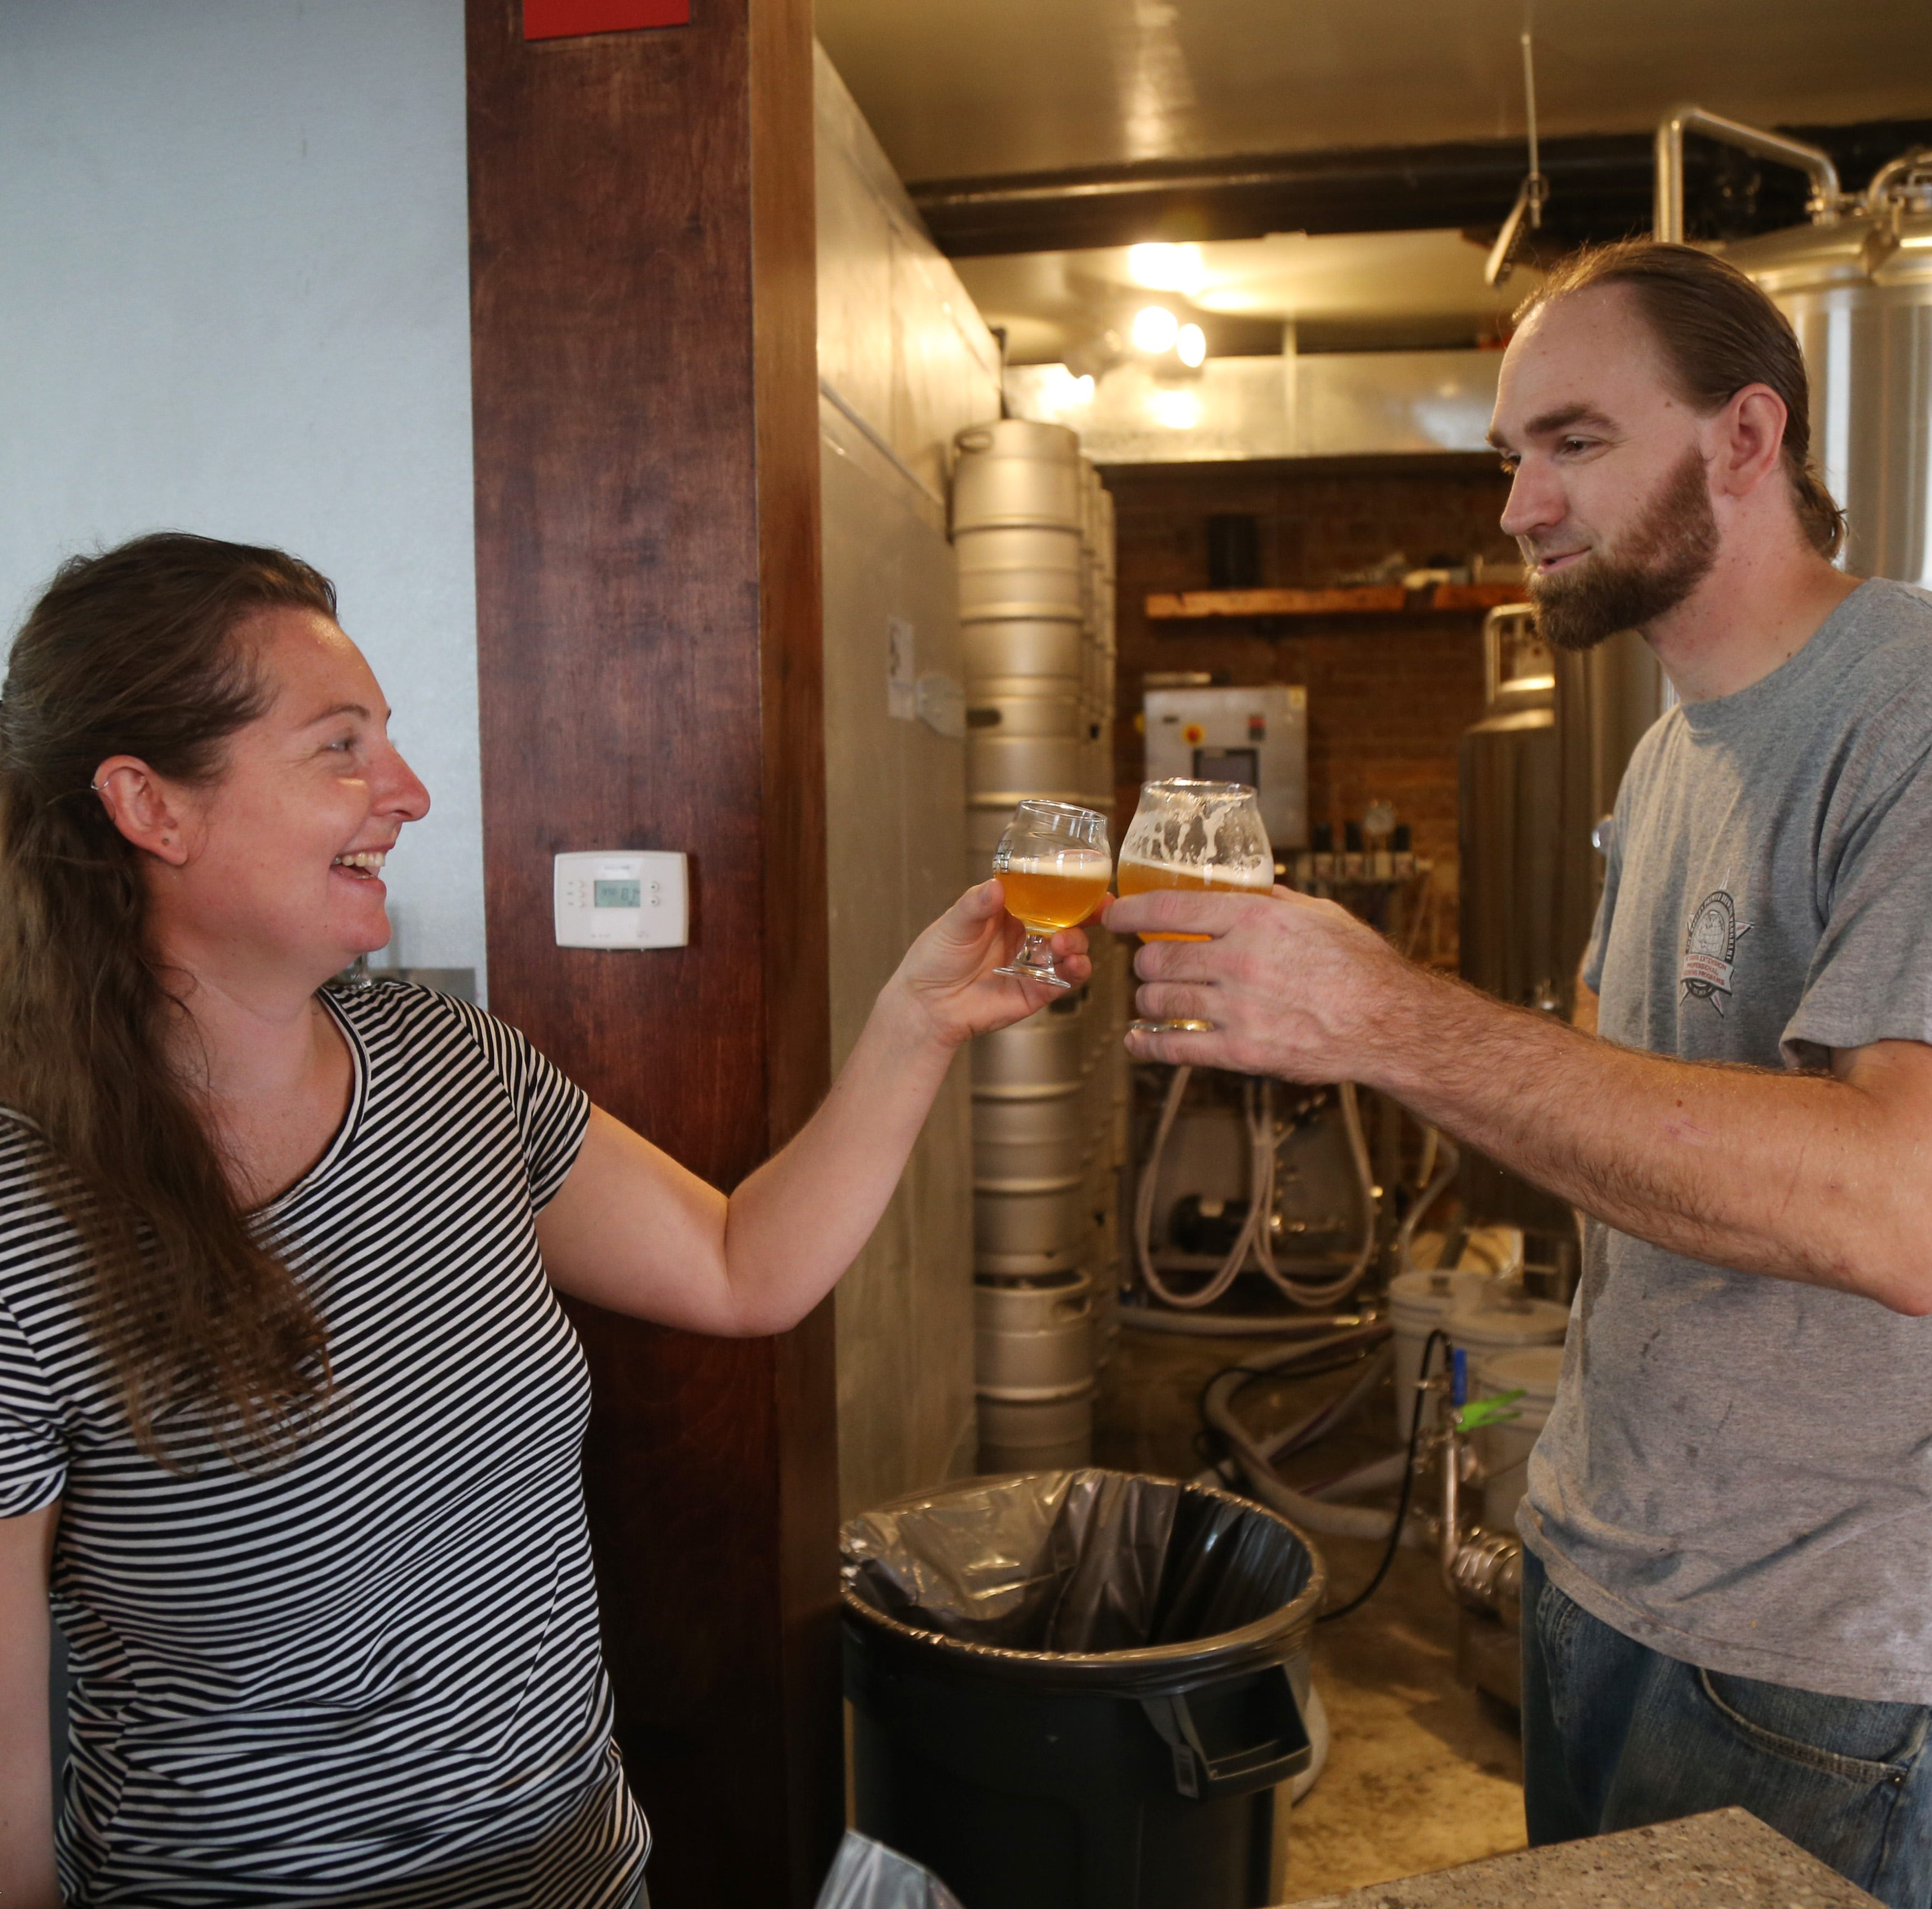 King's Court Brewing Company to offer range of beer styles in City of Poughkeepsie